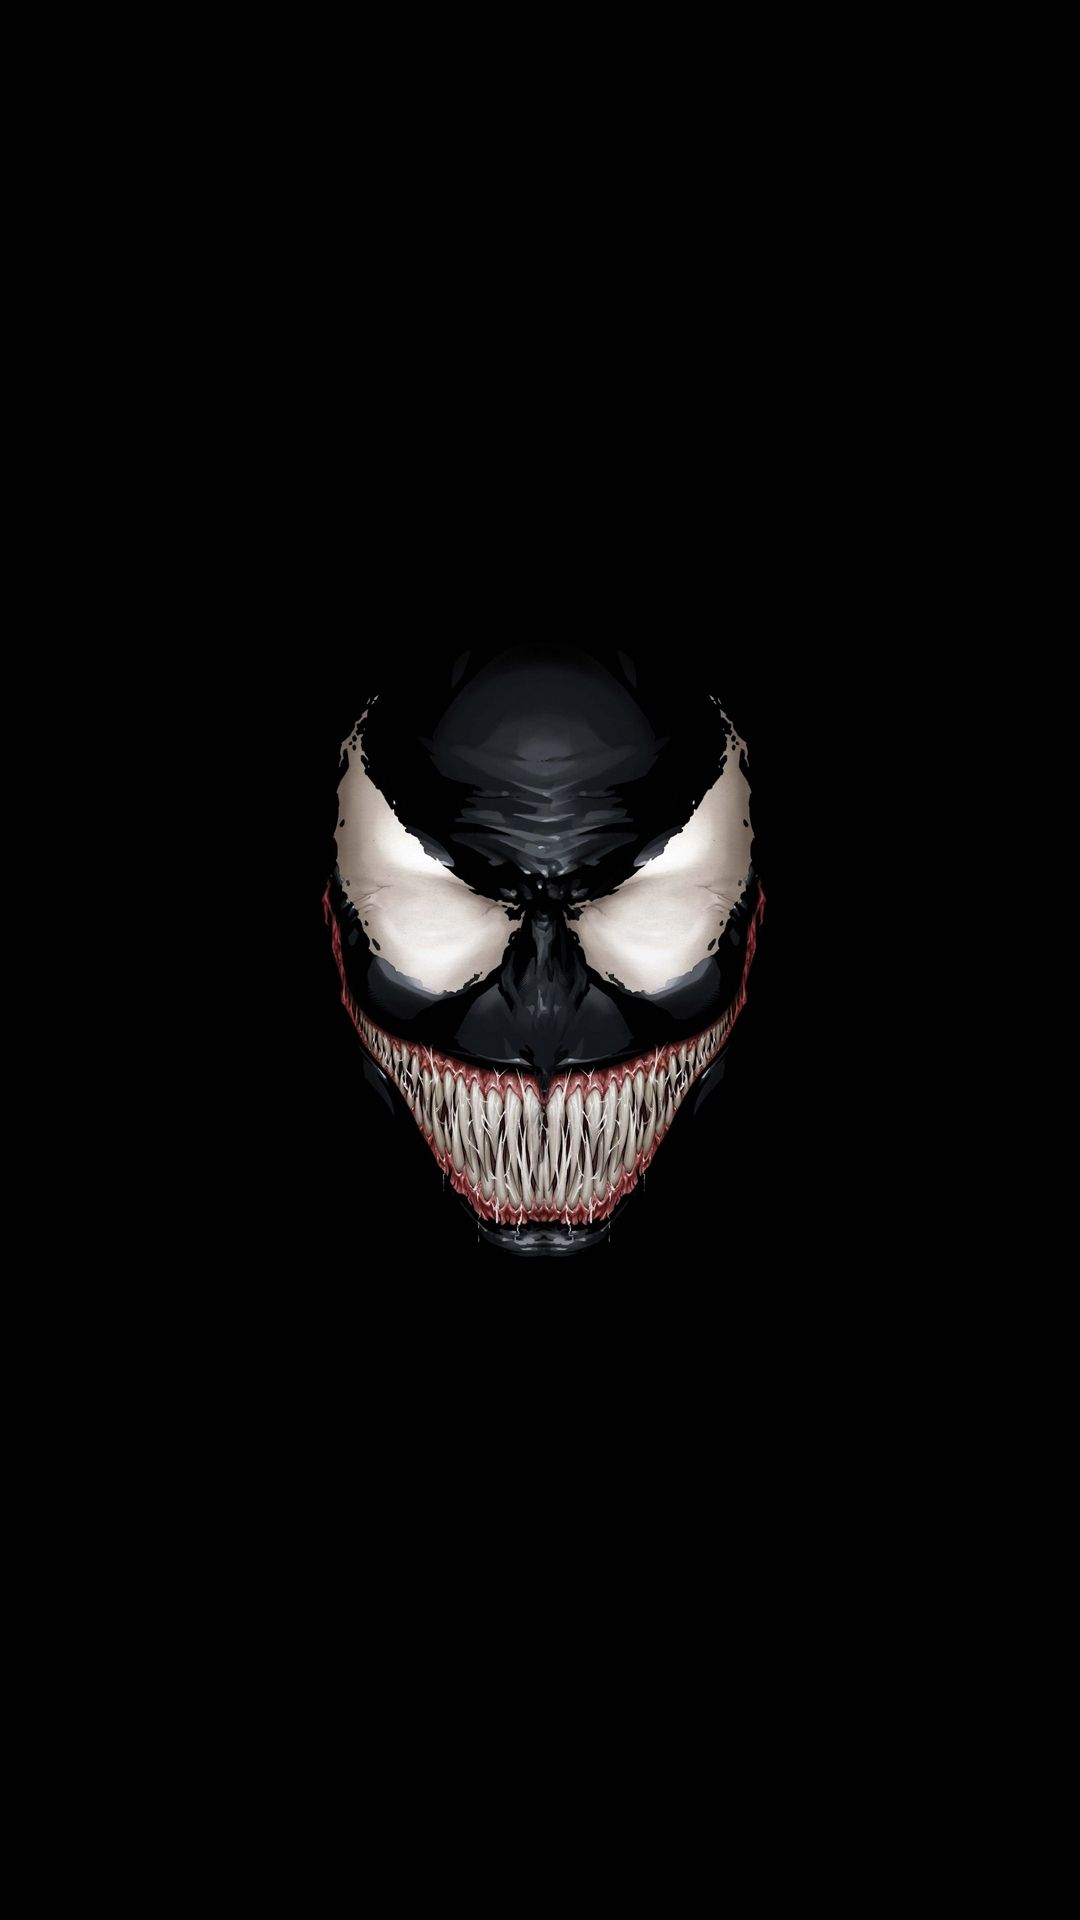 Venom Wallpapers Top Free Venom Backgrounds Wallpaperaccess